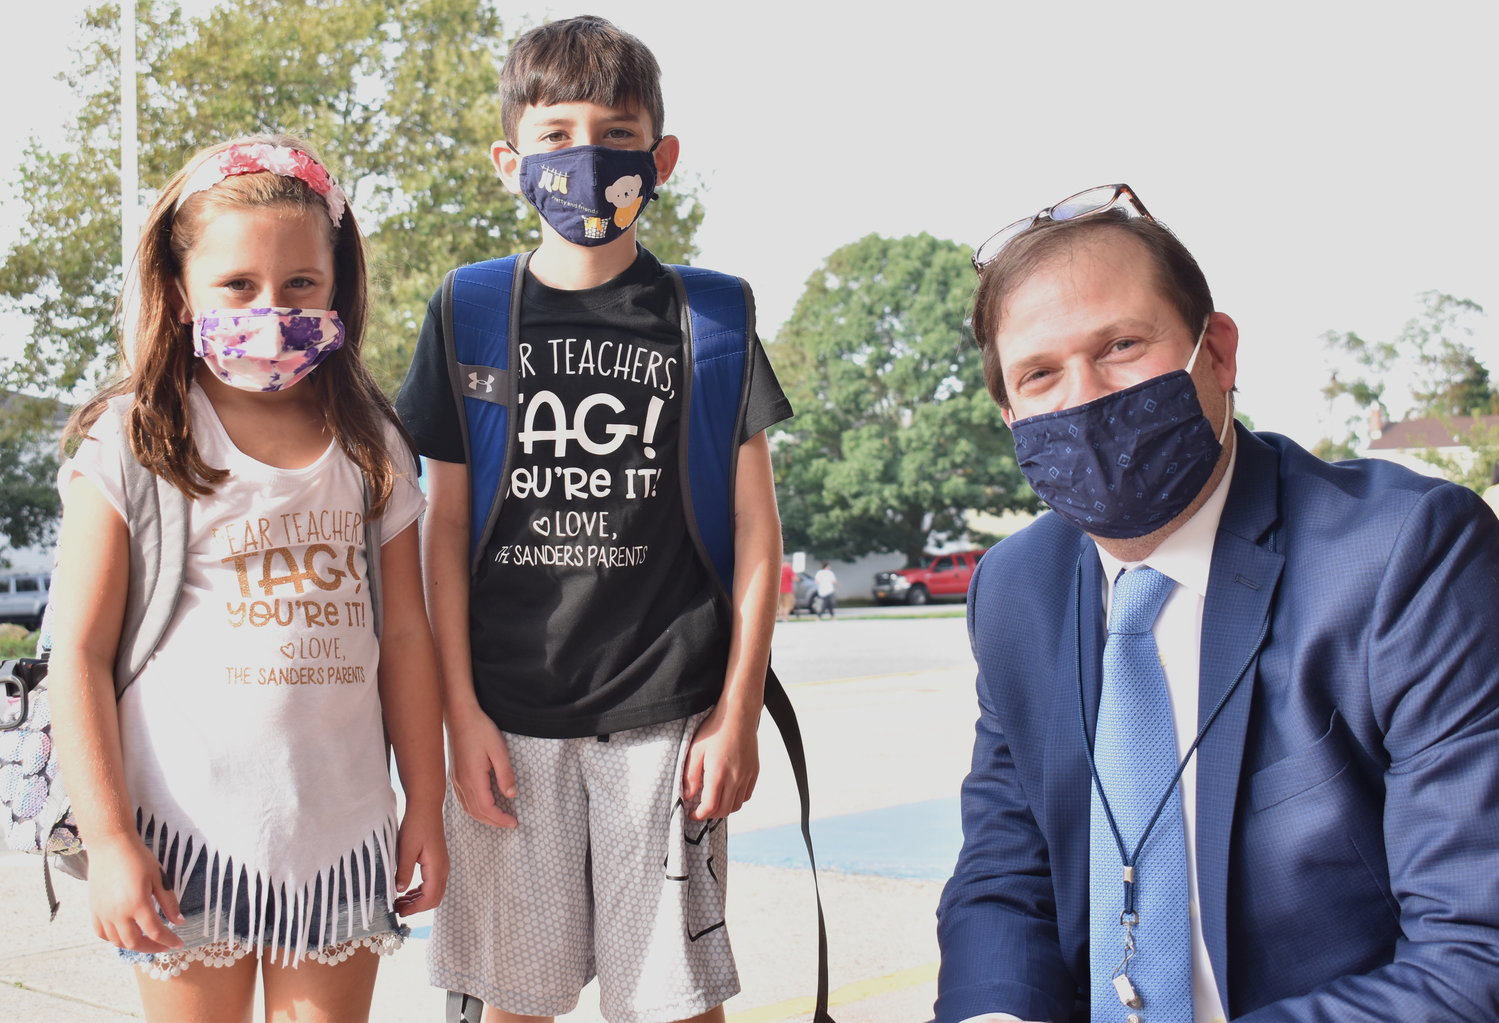 Principal Jeff Rosof greeted the Sander siblings, second grader Skylar and fifth grader Jordan.